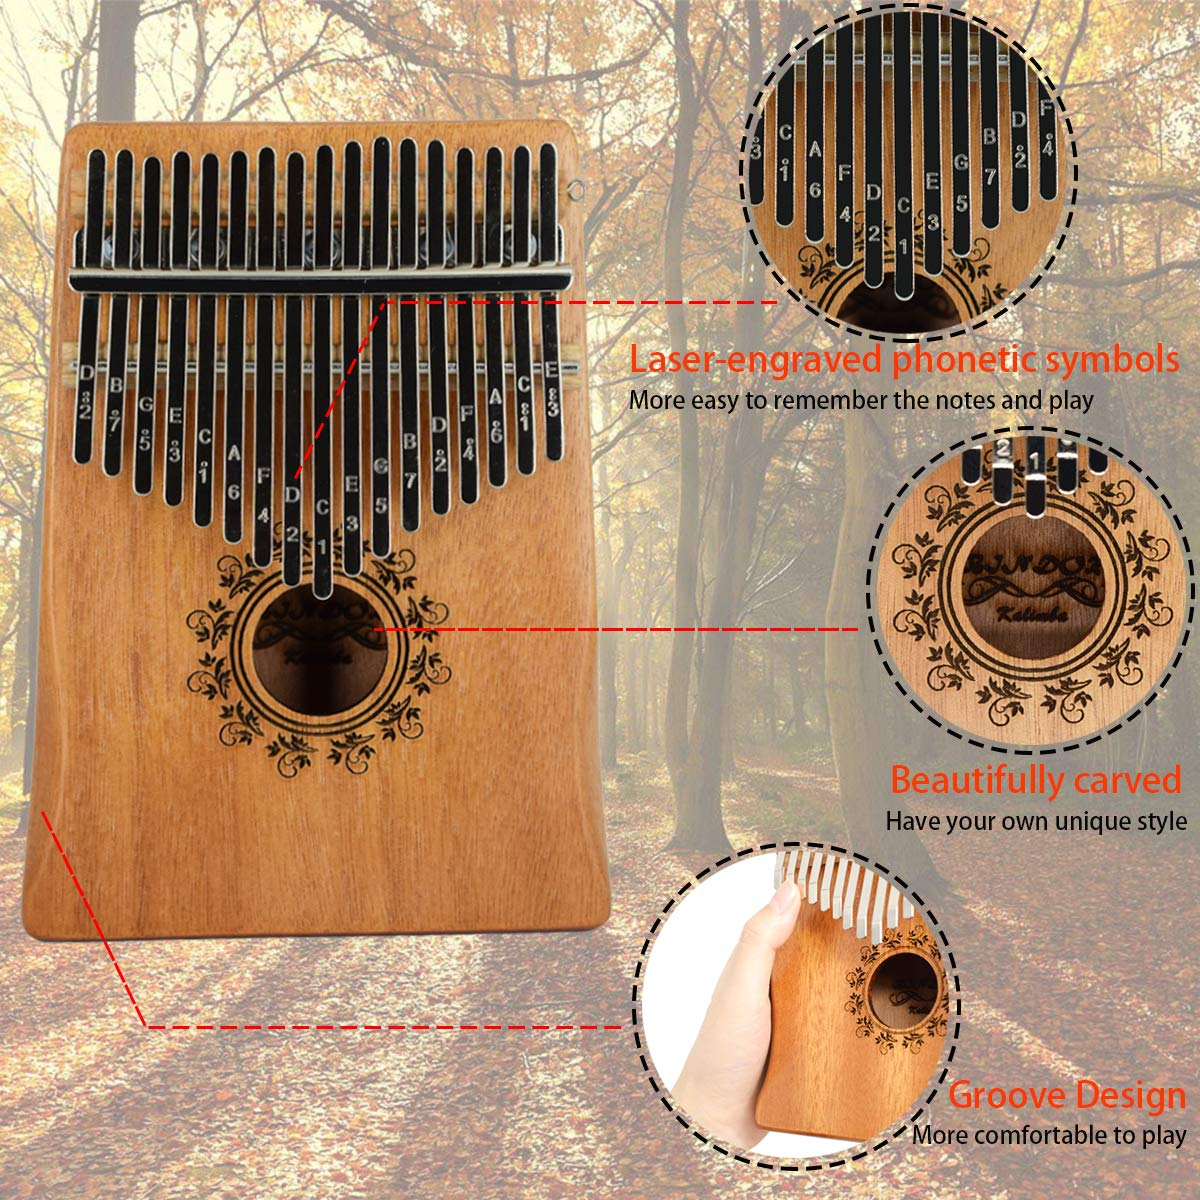 17 Key Kalimba Thumb Piano, Bindor Finger Piano Mbira Kalimba Solid Mahogany Body Portable Easy-to-learn Musical Instrument with Tuning Hammer(Wood Color) by BinDor (Image #2)